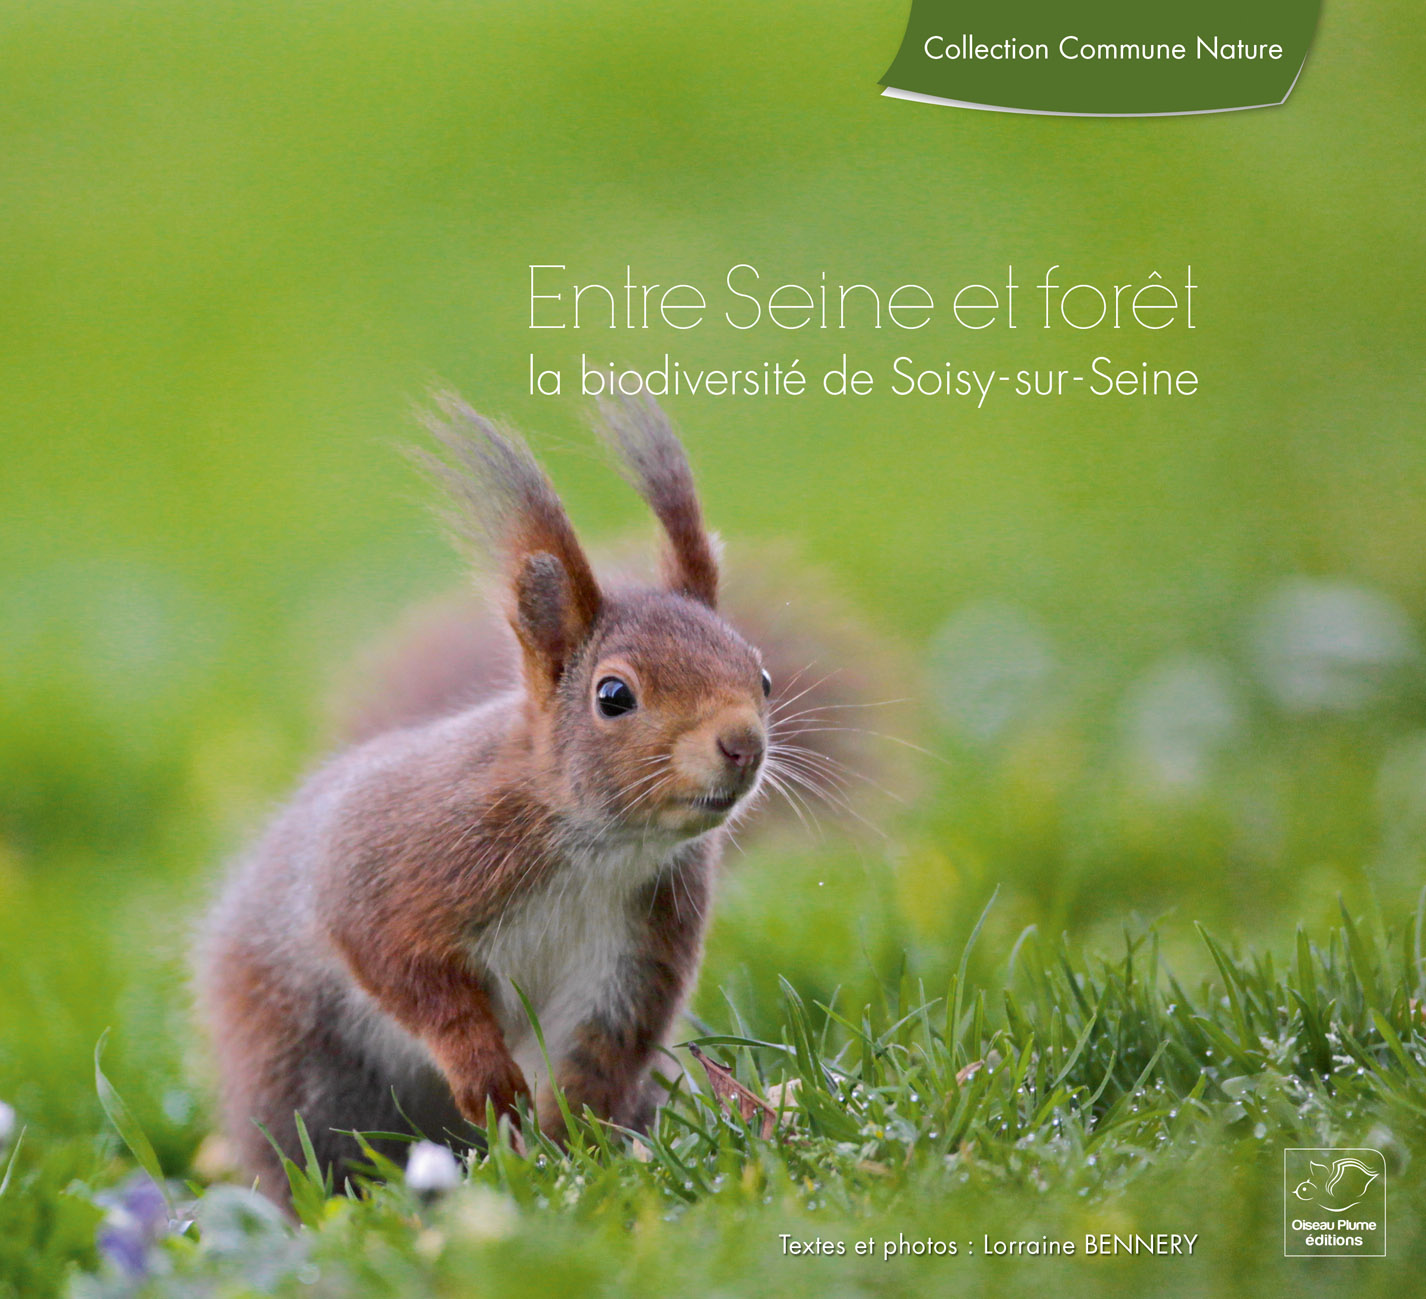 Between the Seine river and Forest, the biodiversity of Soisy-sur-Seine